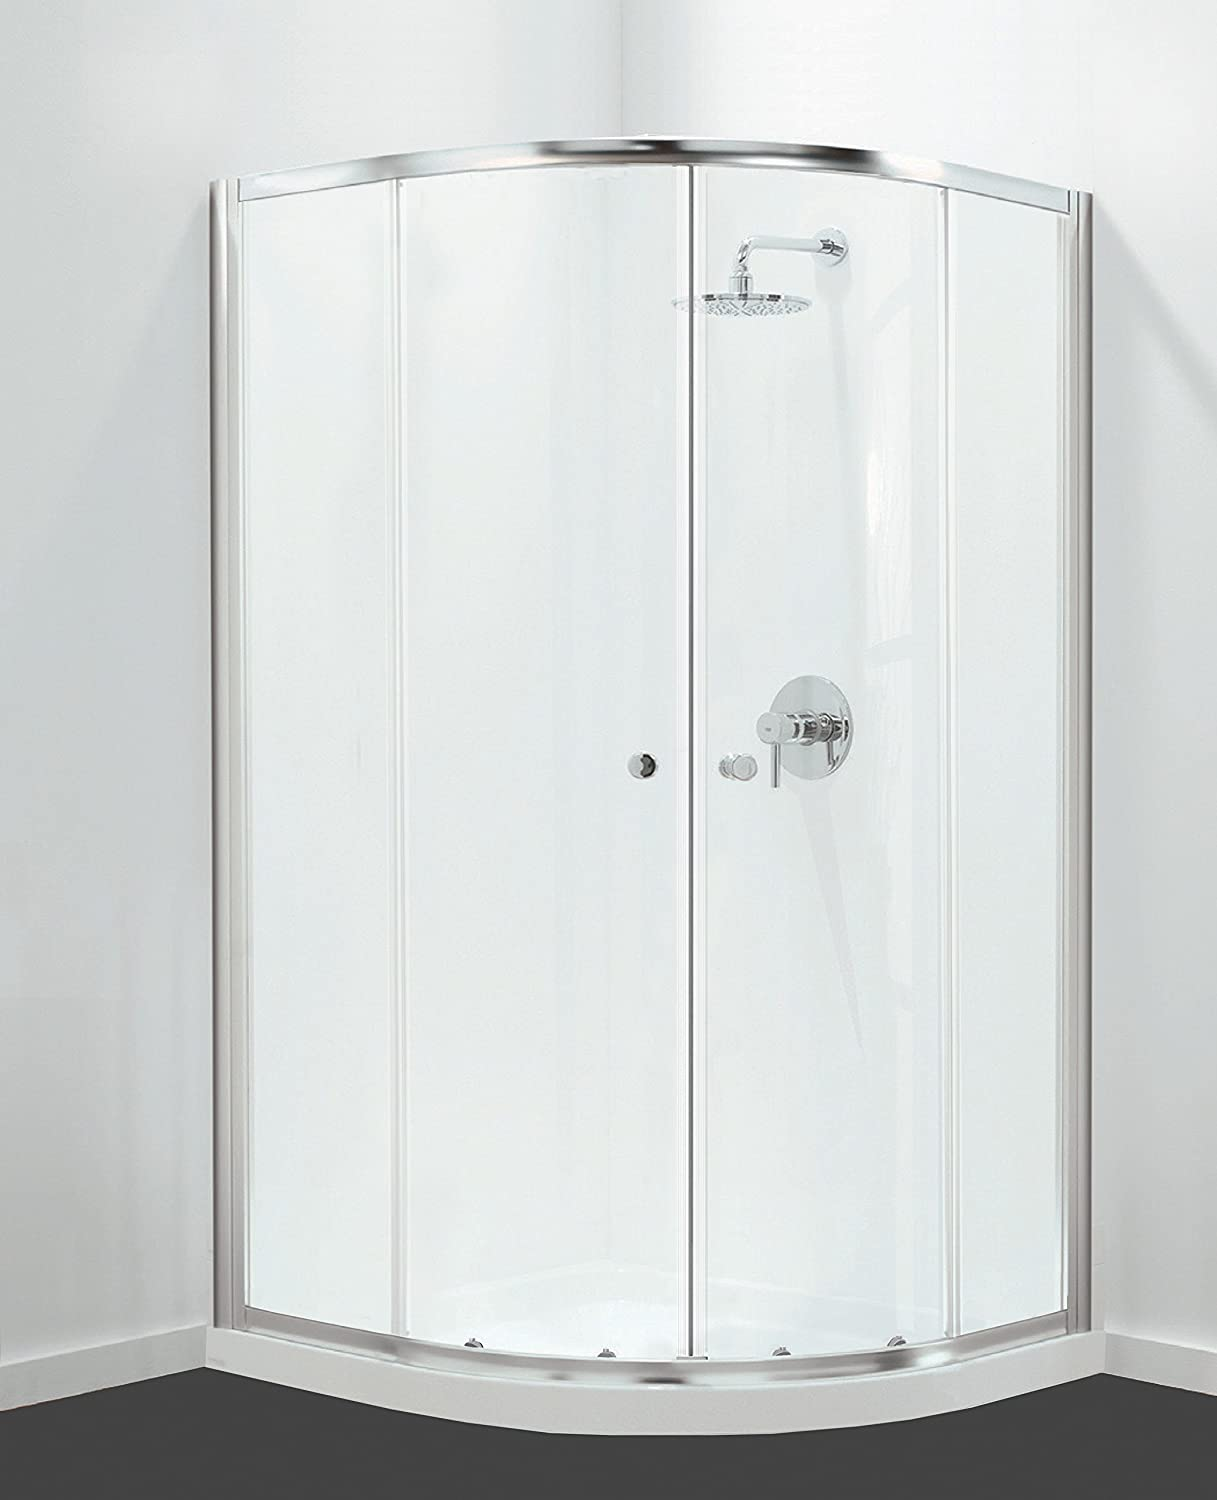 800x800mm Coram GB GBQD280CUC 1800mm Quadrant Shower Enclosure Chrome